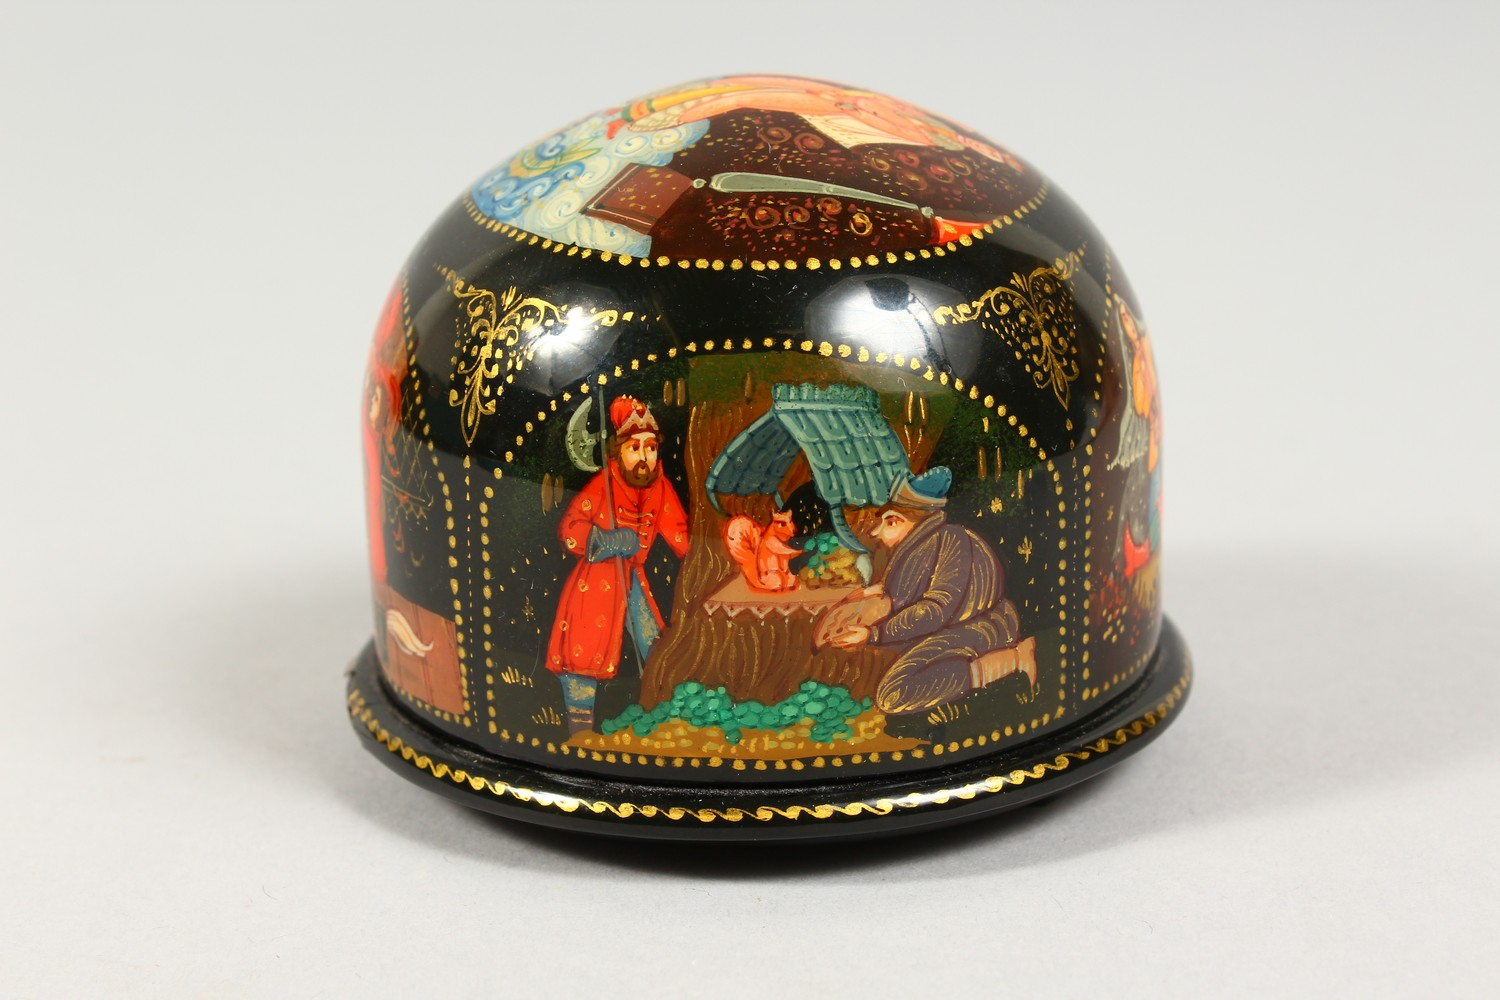 TWO SMALL RUSSIAN CIRCULAR BLACK PAPIER MACHE BOXES AND COVERS. 2.5ins diameter. - Image 8 of 12